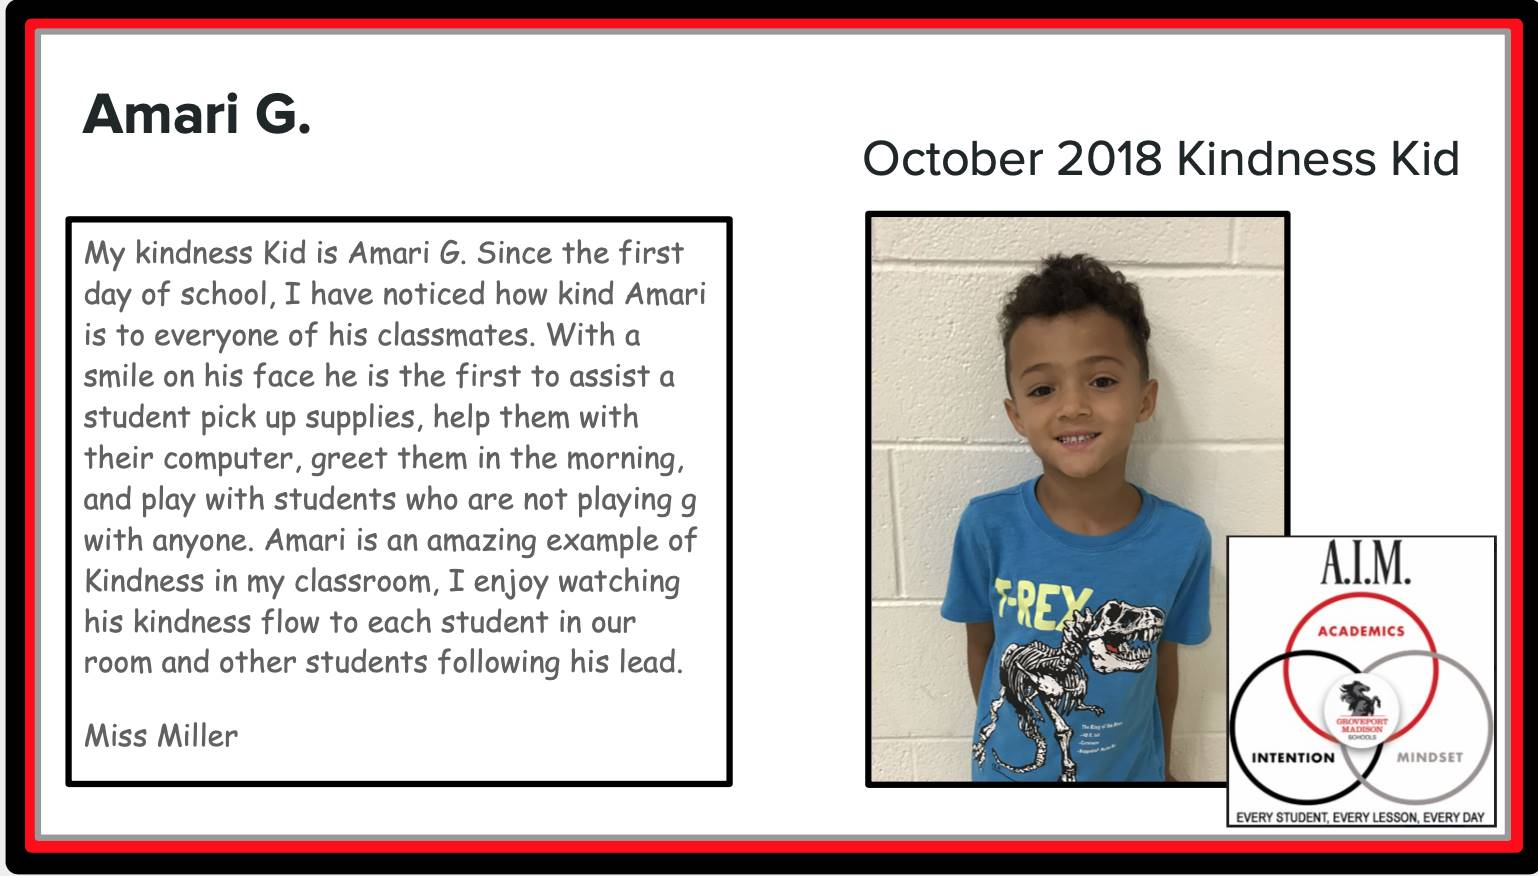 Kindness Kid Amari